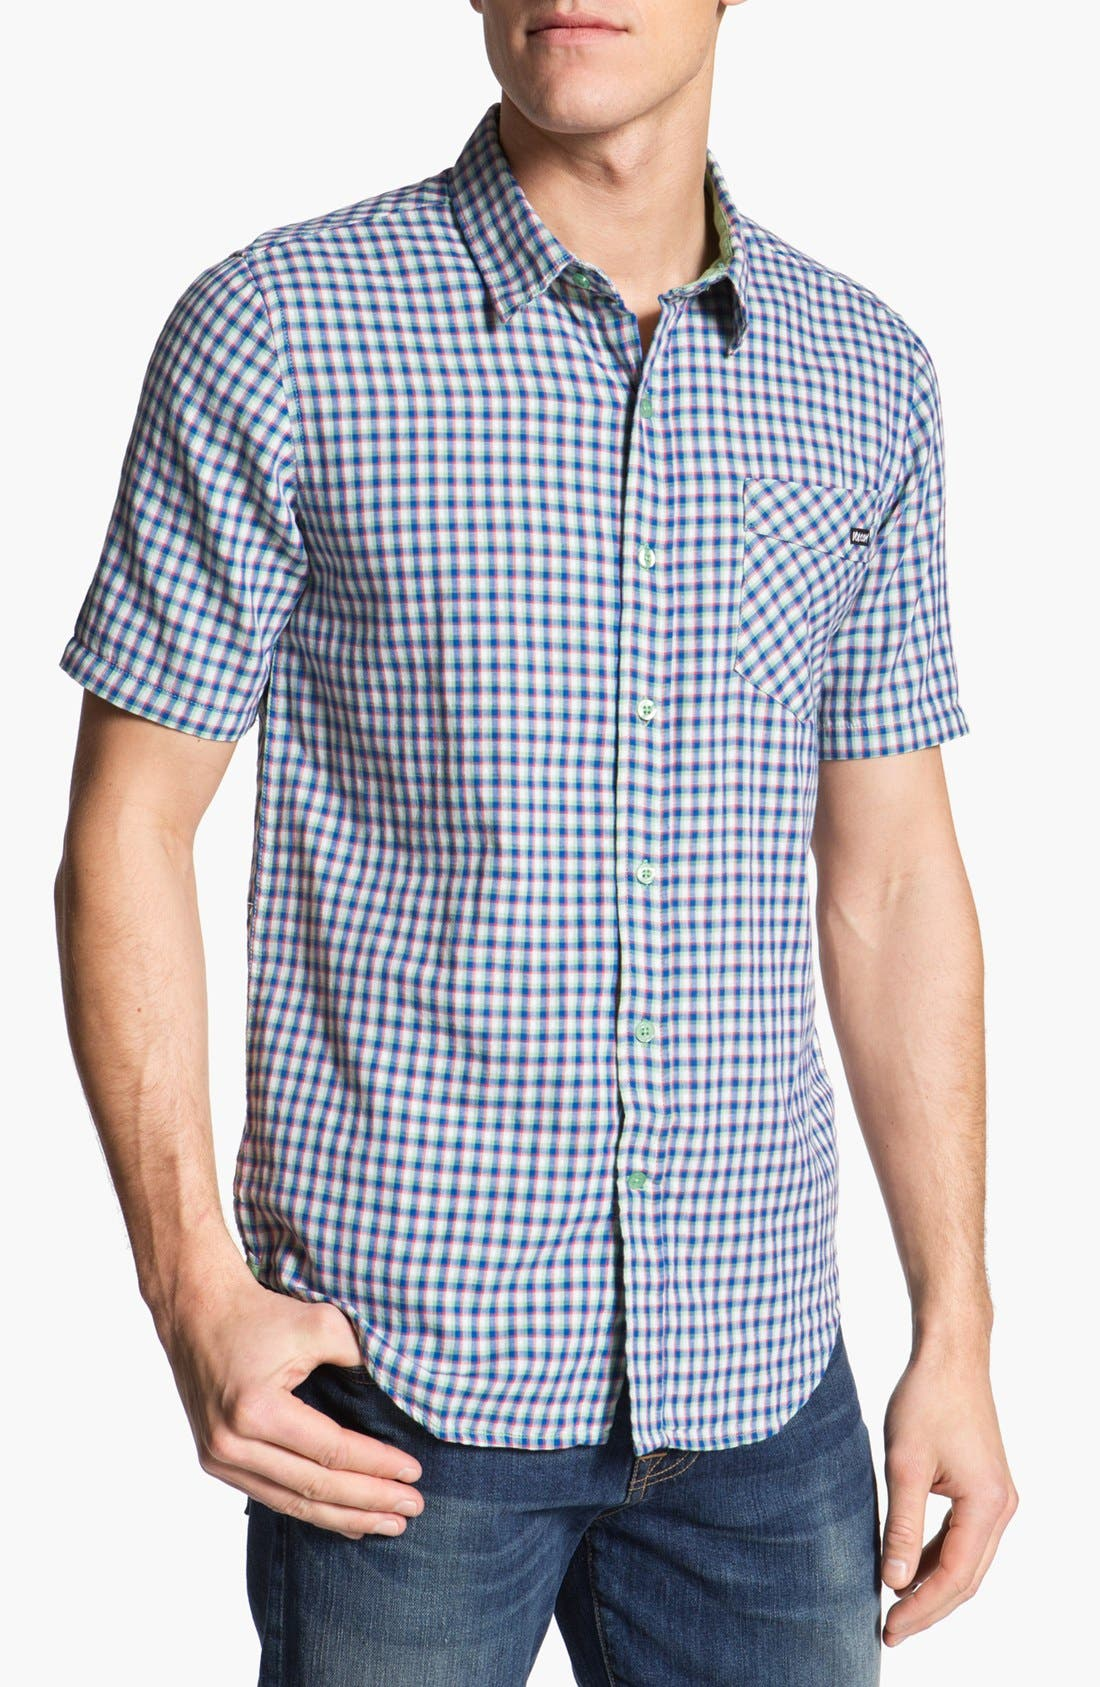 Alternate Image 1 Selected - Volcom 'Lanford' Short Sleeve Check Woven Shirt